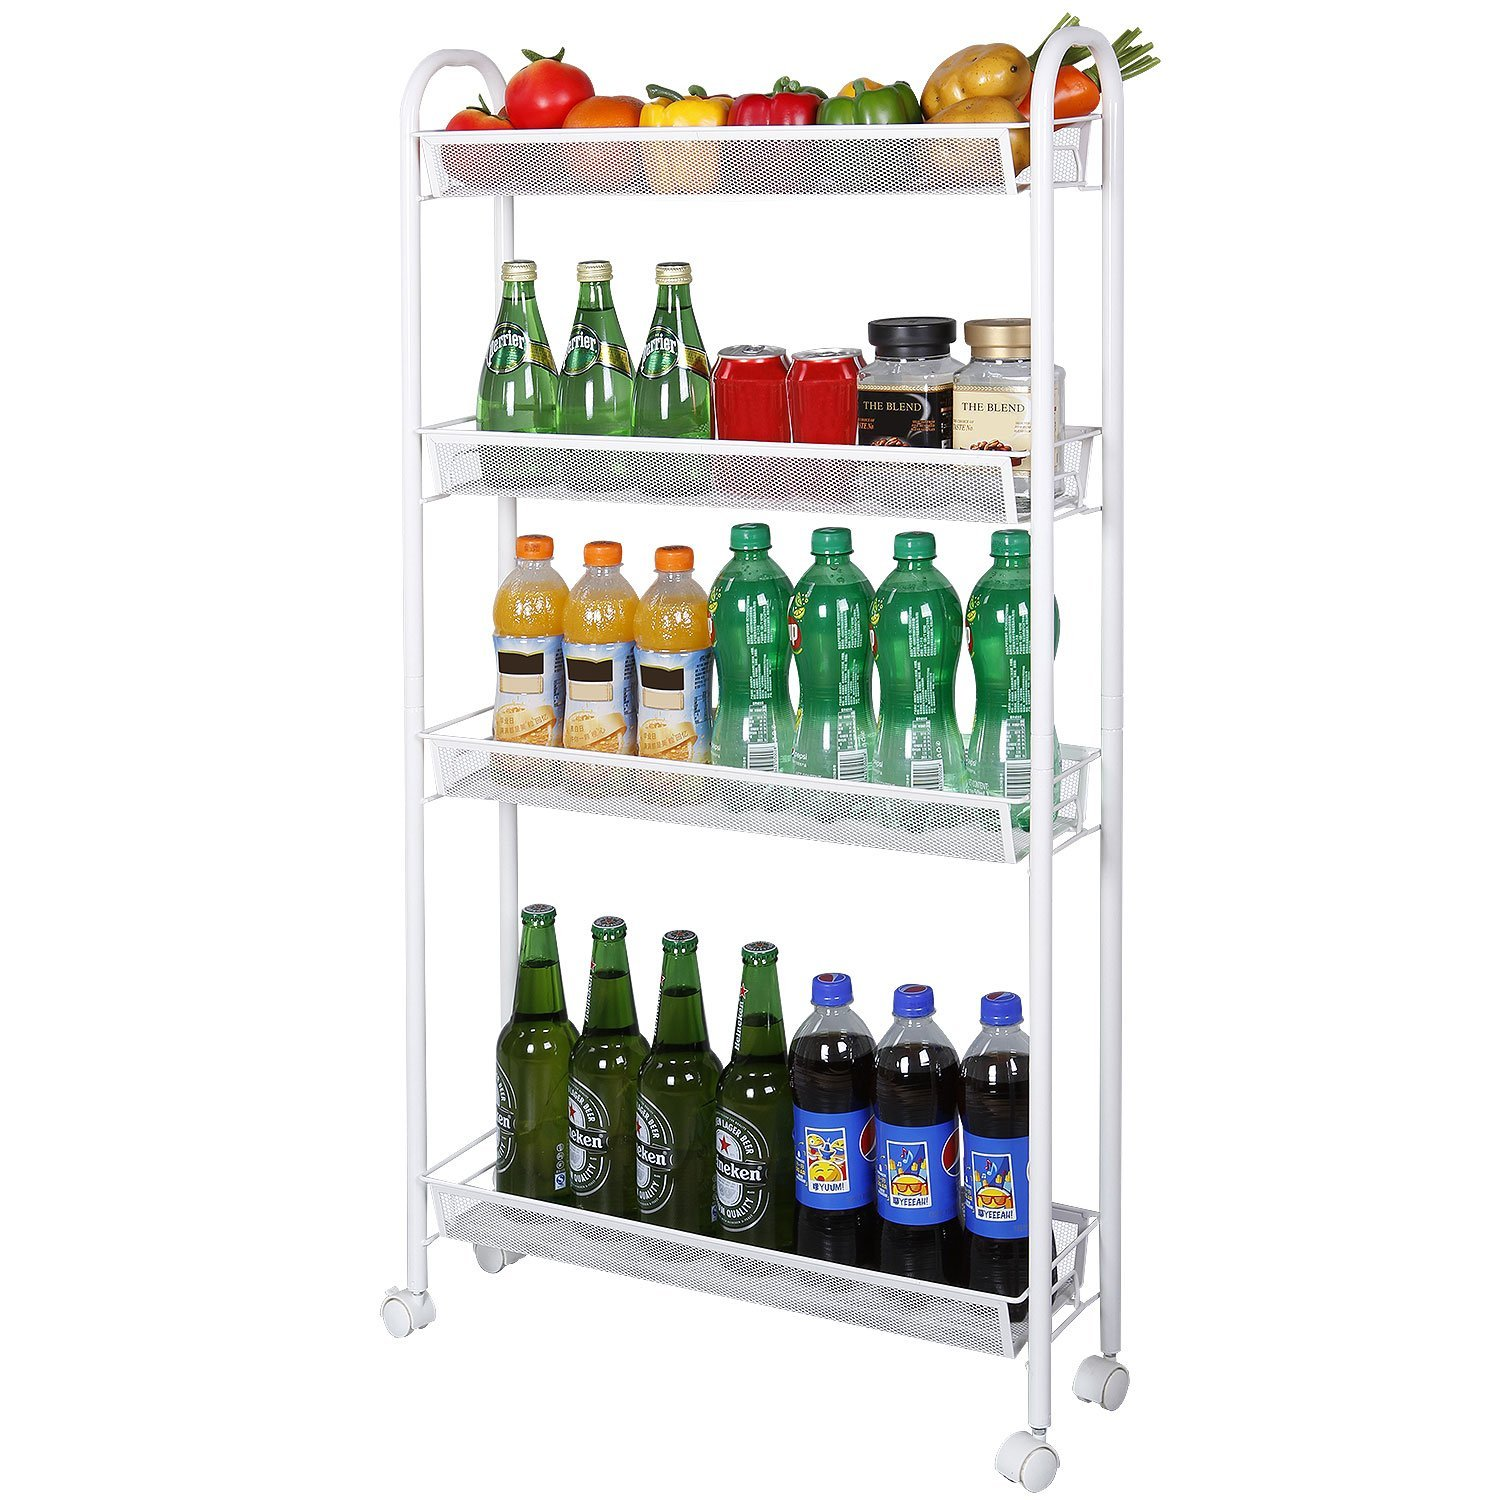 Zimtown 4-Tier Gap Kitchen Slim Slide Out Storage Tower Rack with Wheels, Cupboard with Casters